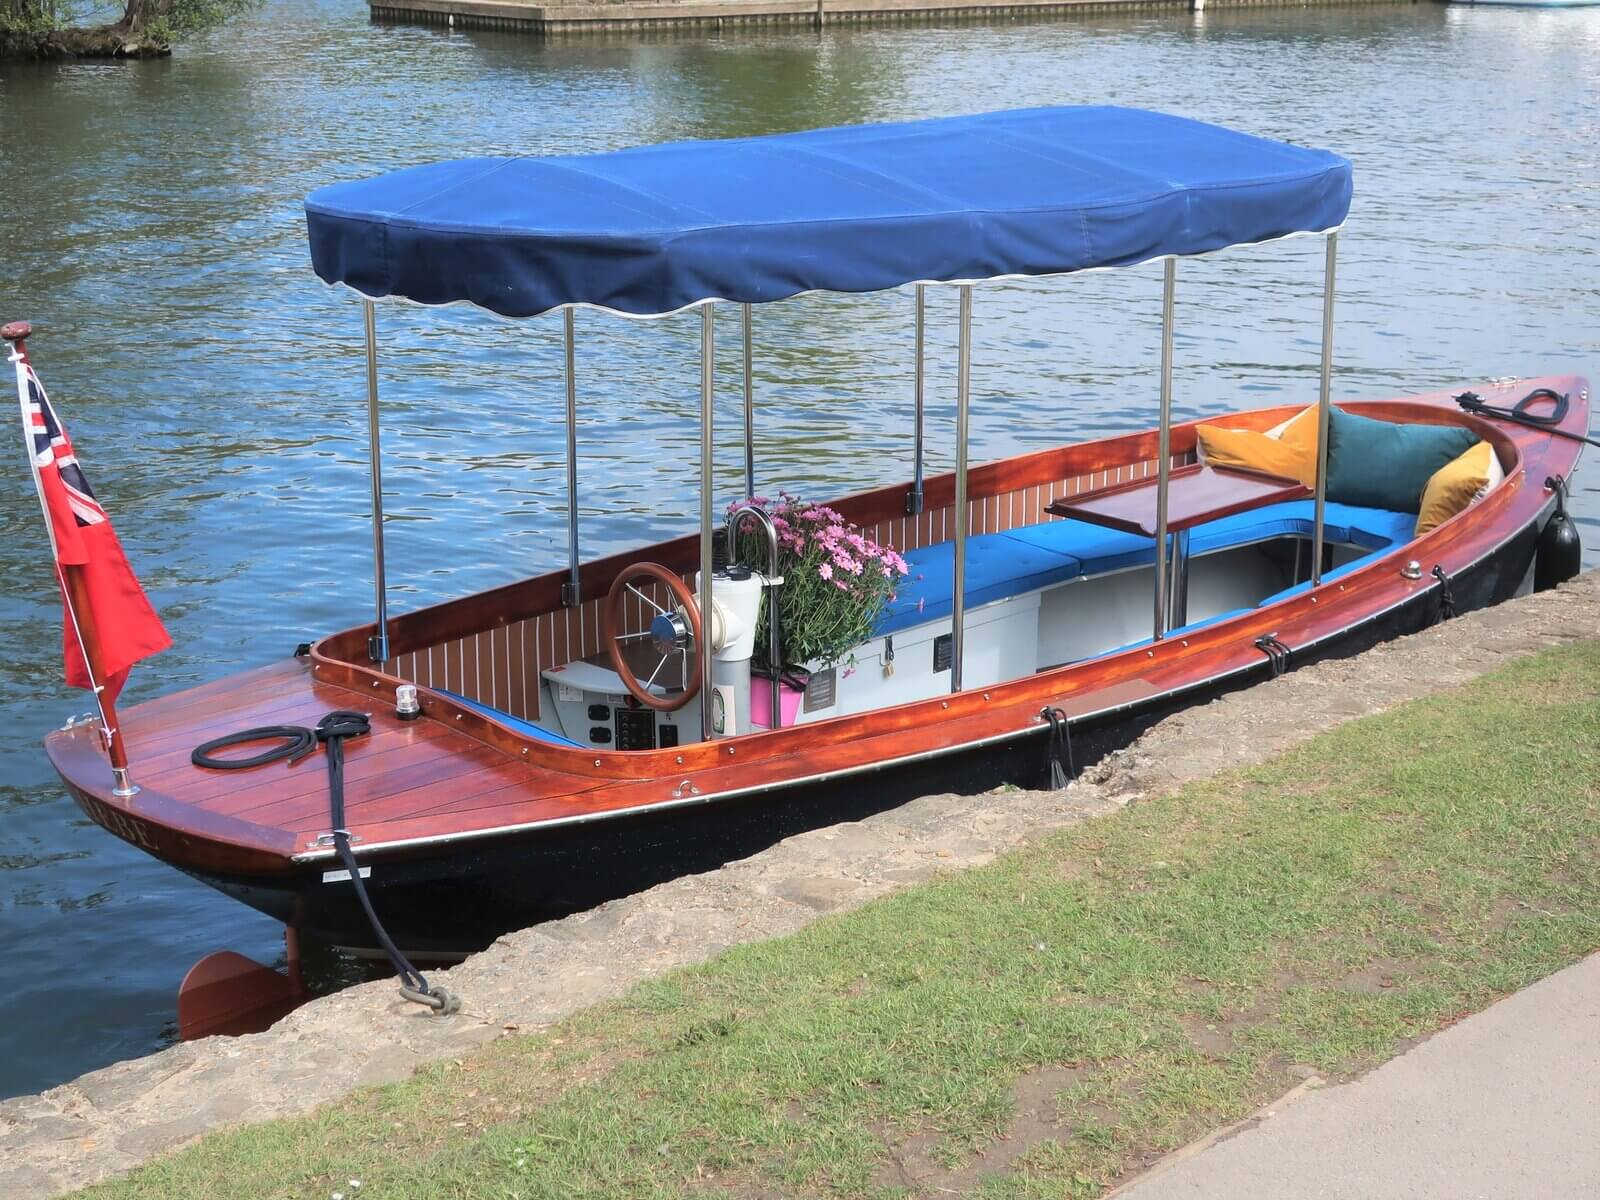 Edwardian-style electric boat for hire in Henley-on-Thames